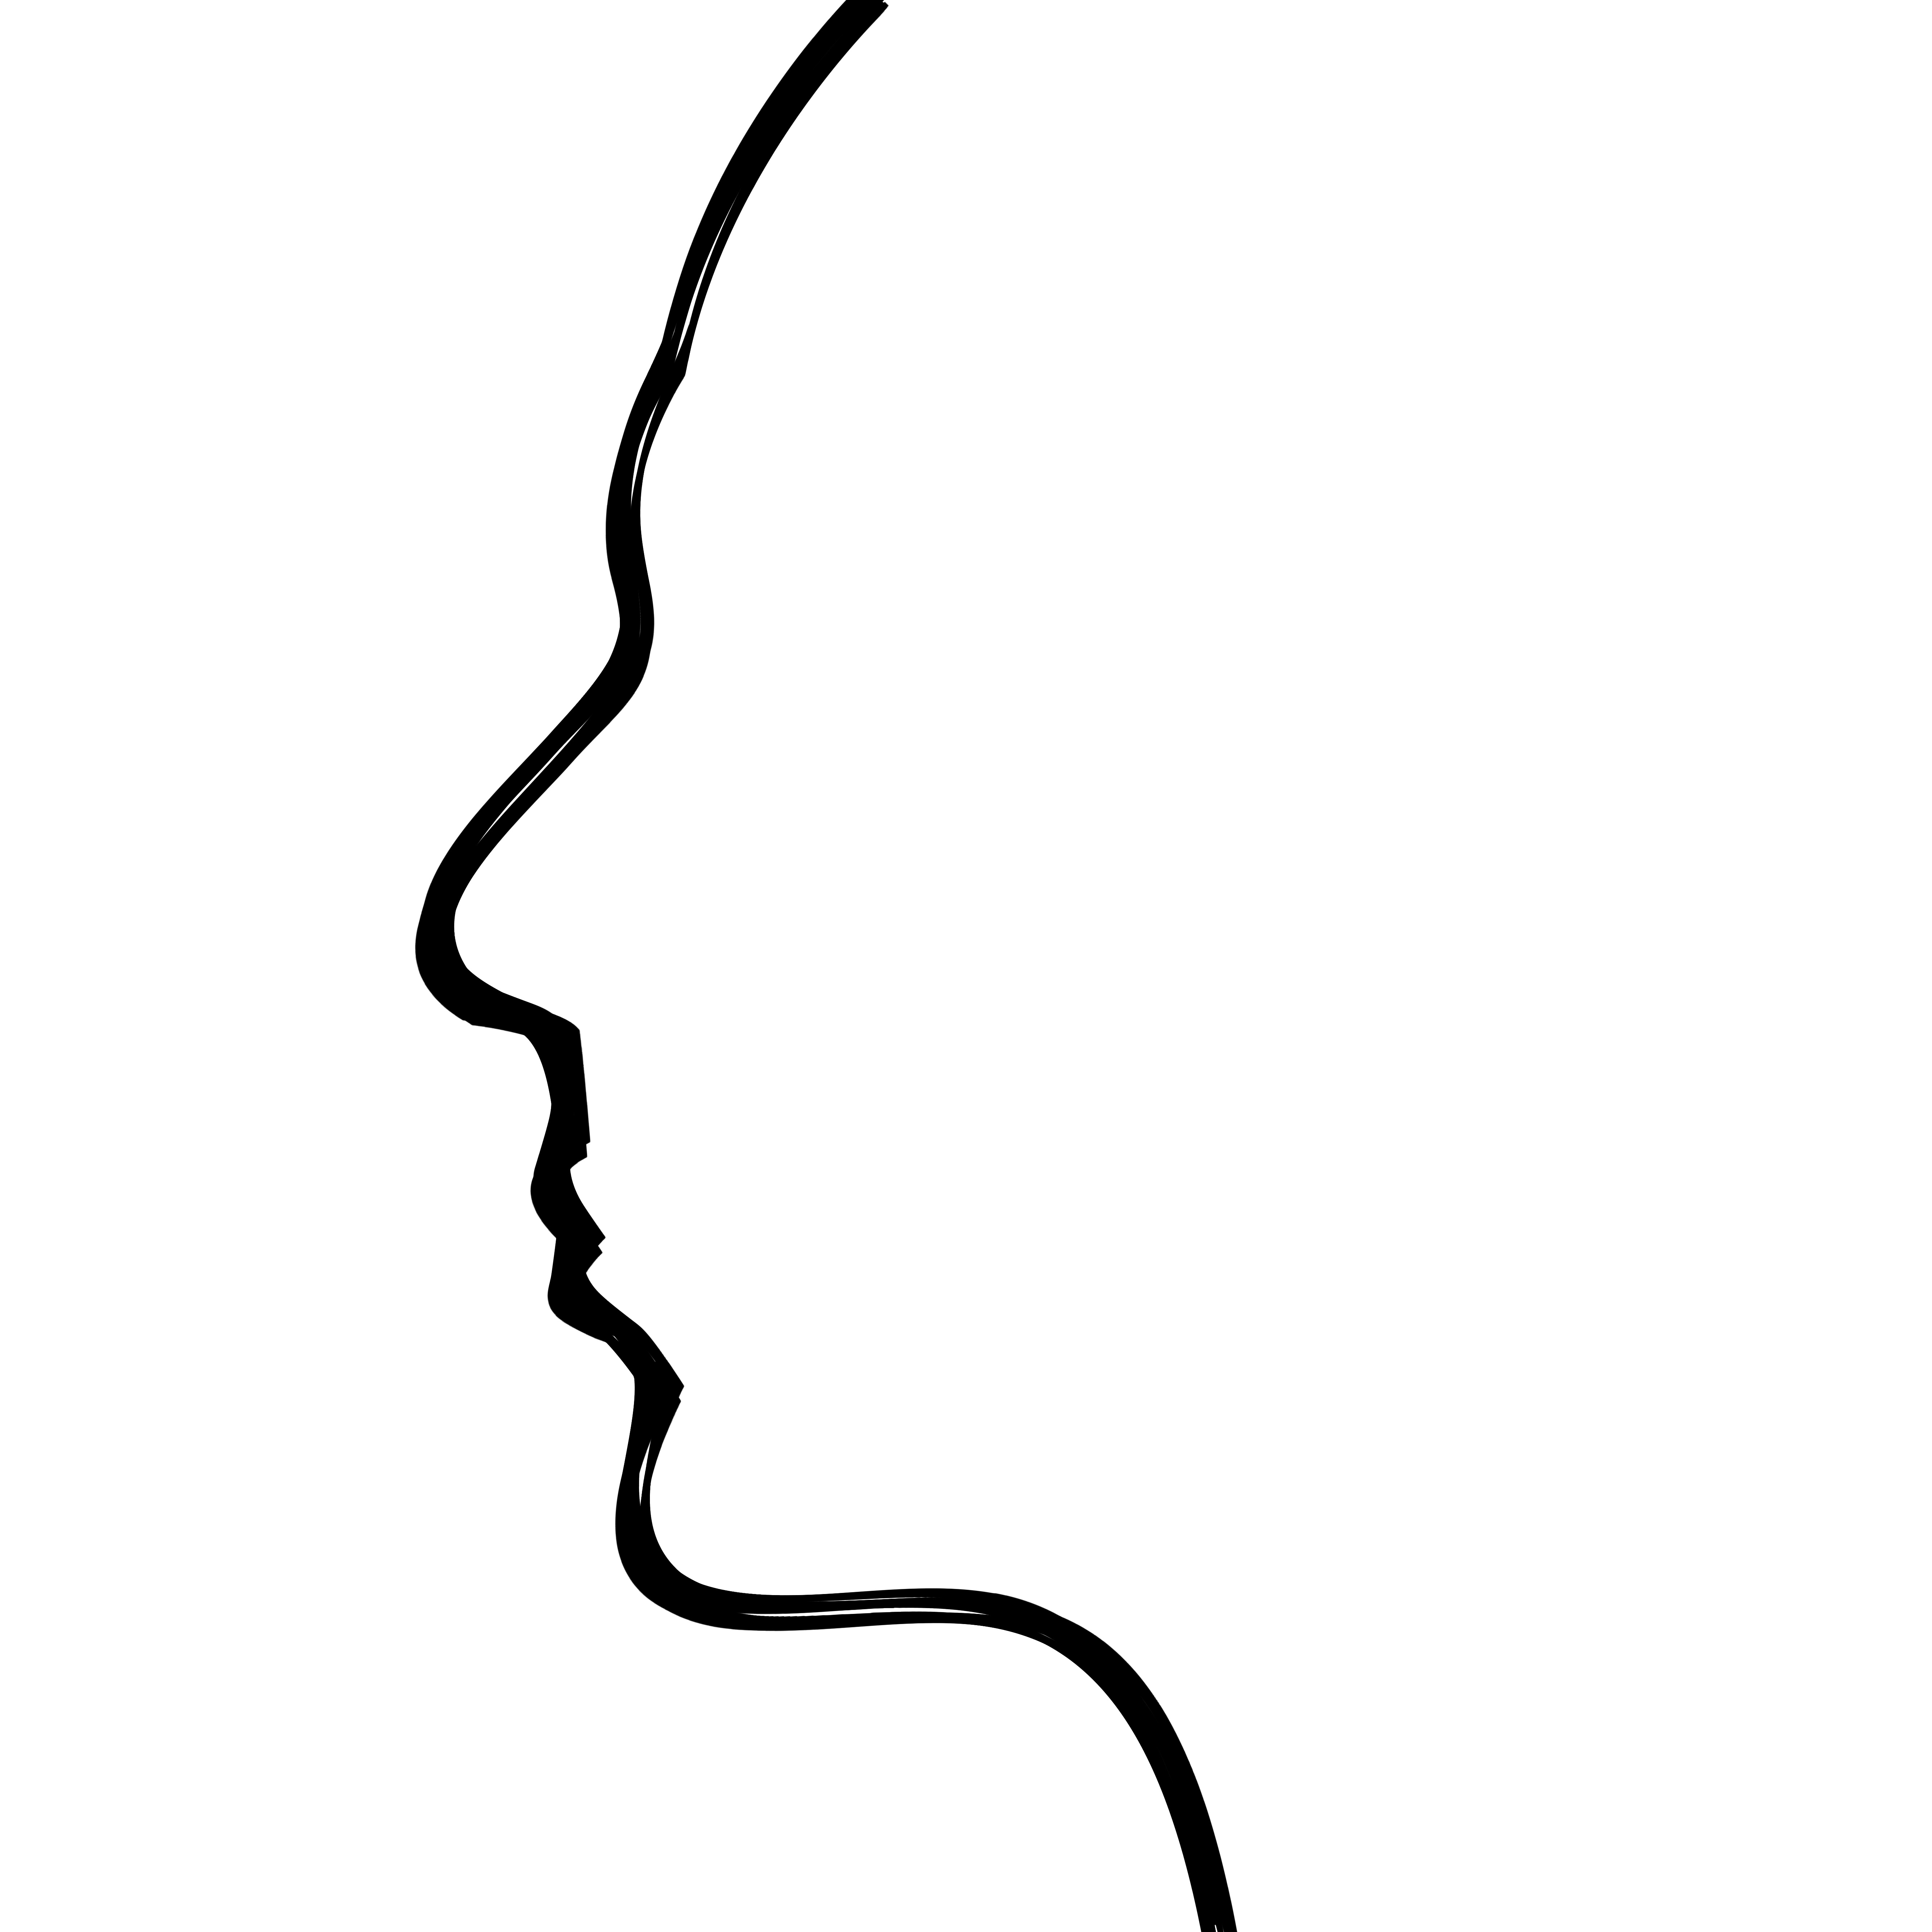 Fear clipart darkness Line psychology fear branch drawing